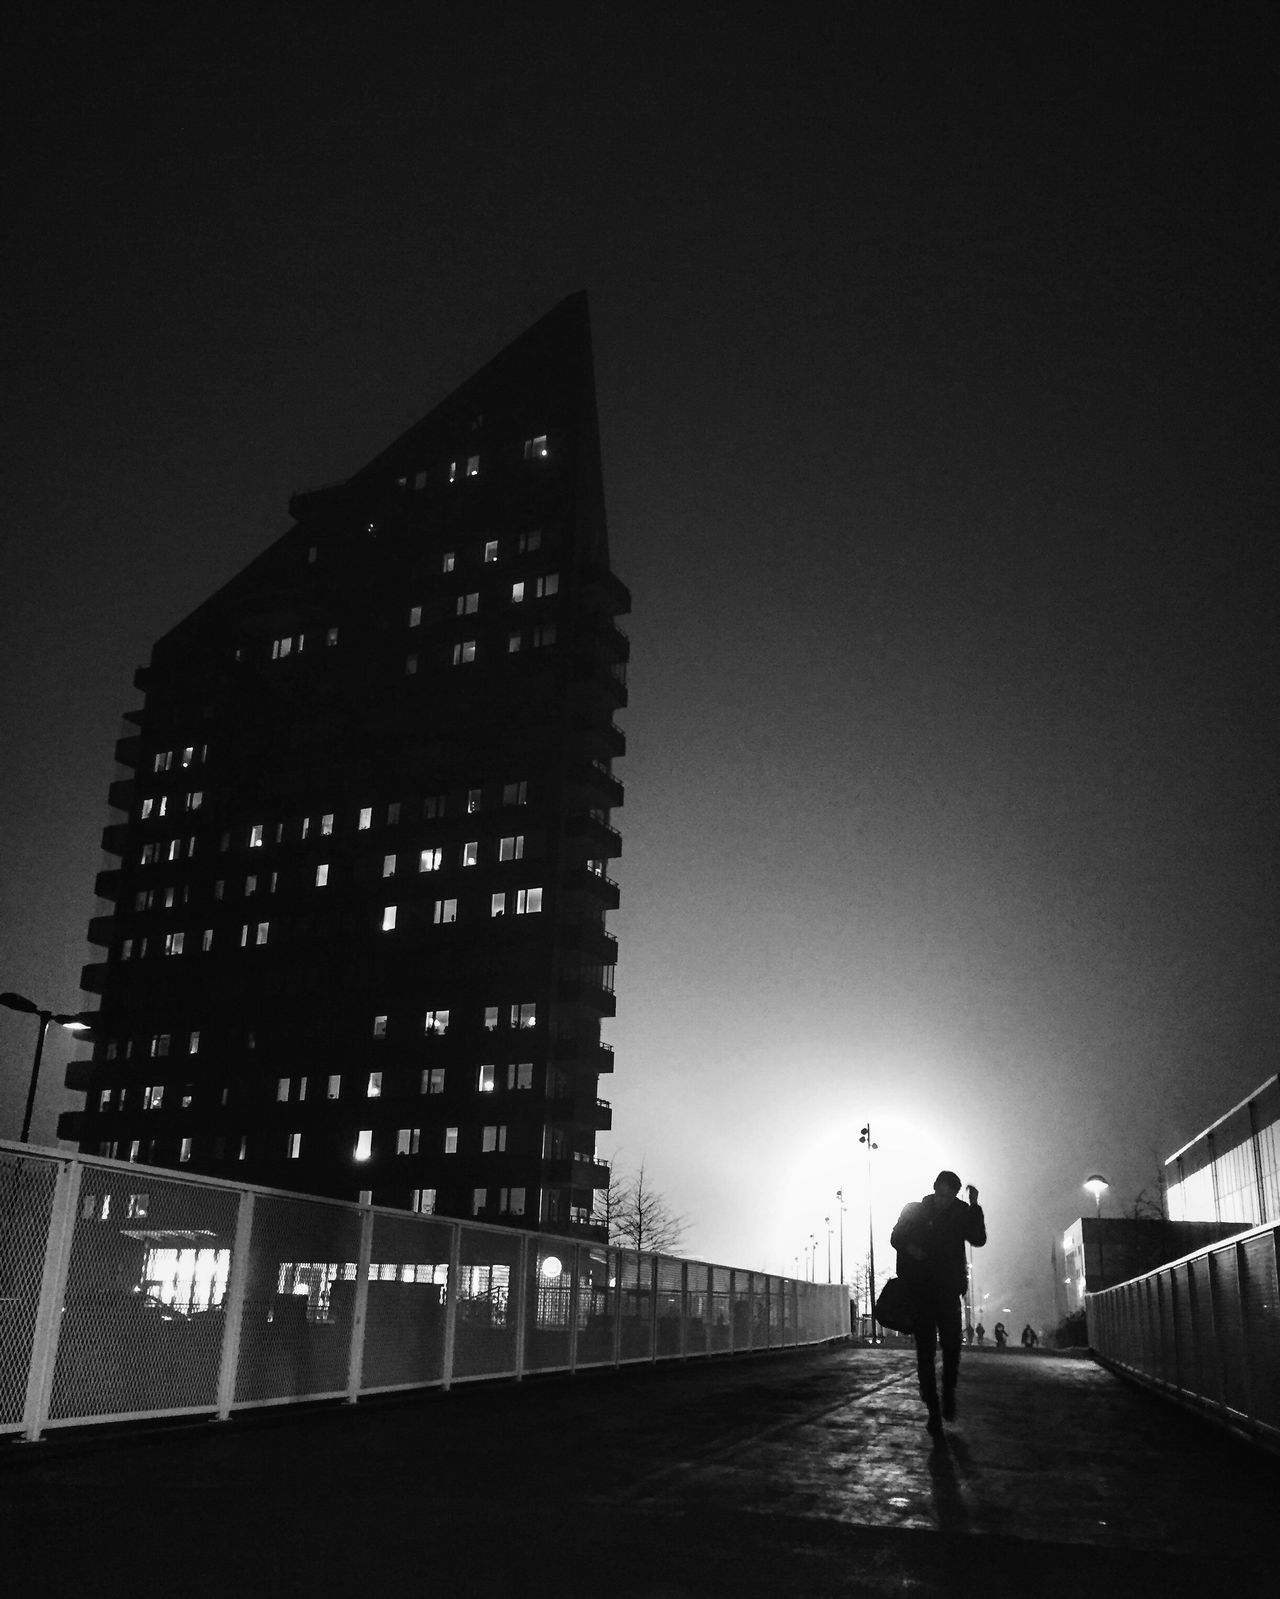 Built Structure City Night Illuminated Skyscraper One Person Monochrome Black And White Street Photography Tranquility Silhouette Bw_collection Darkness And Light